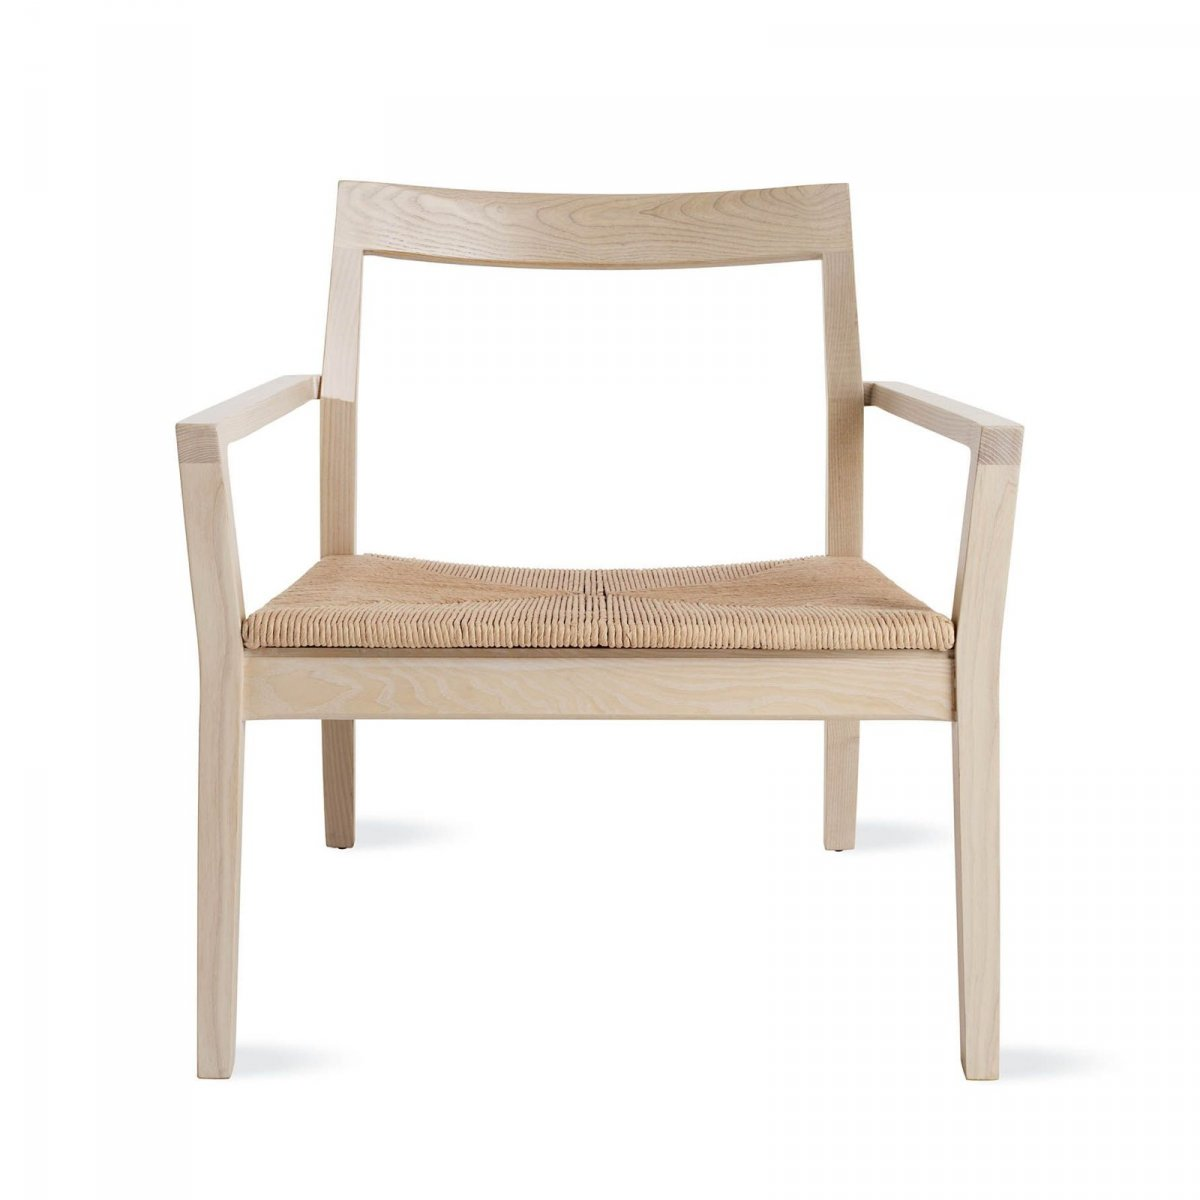 Krusin Lounge Arm Chair, white ash, front view.